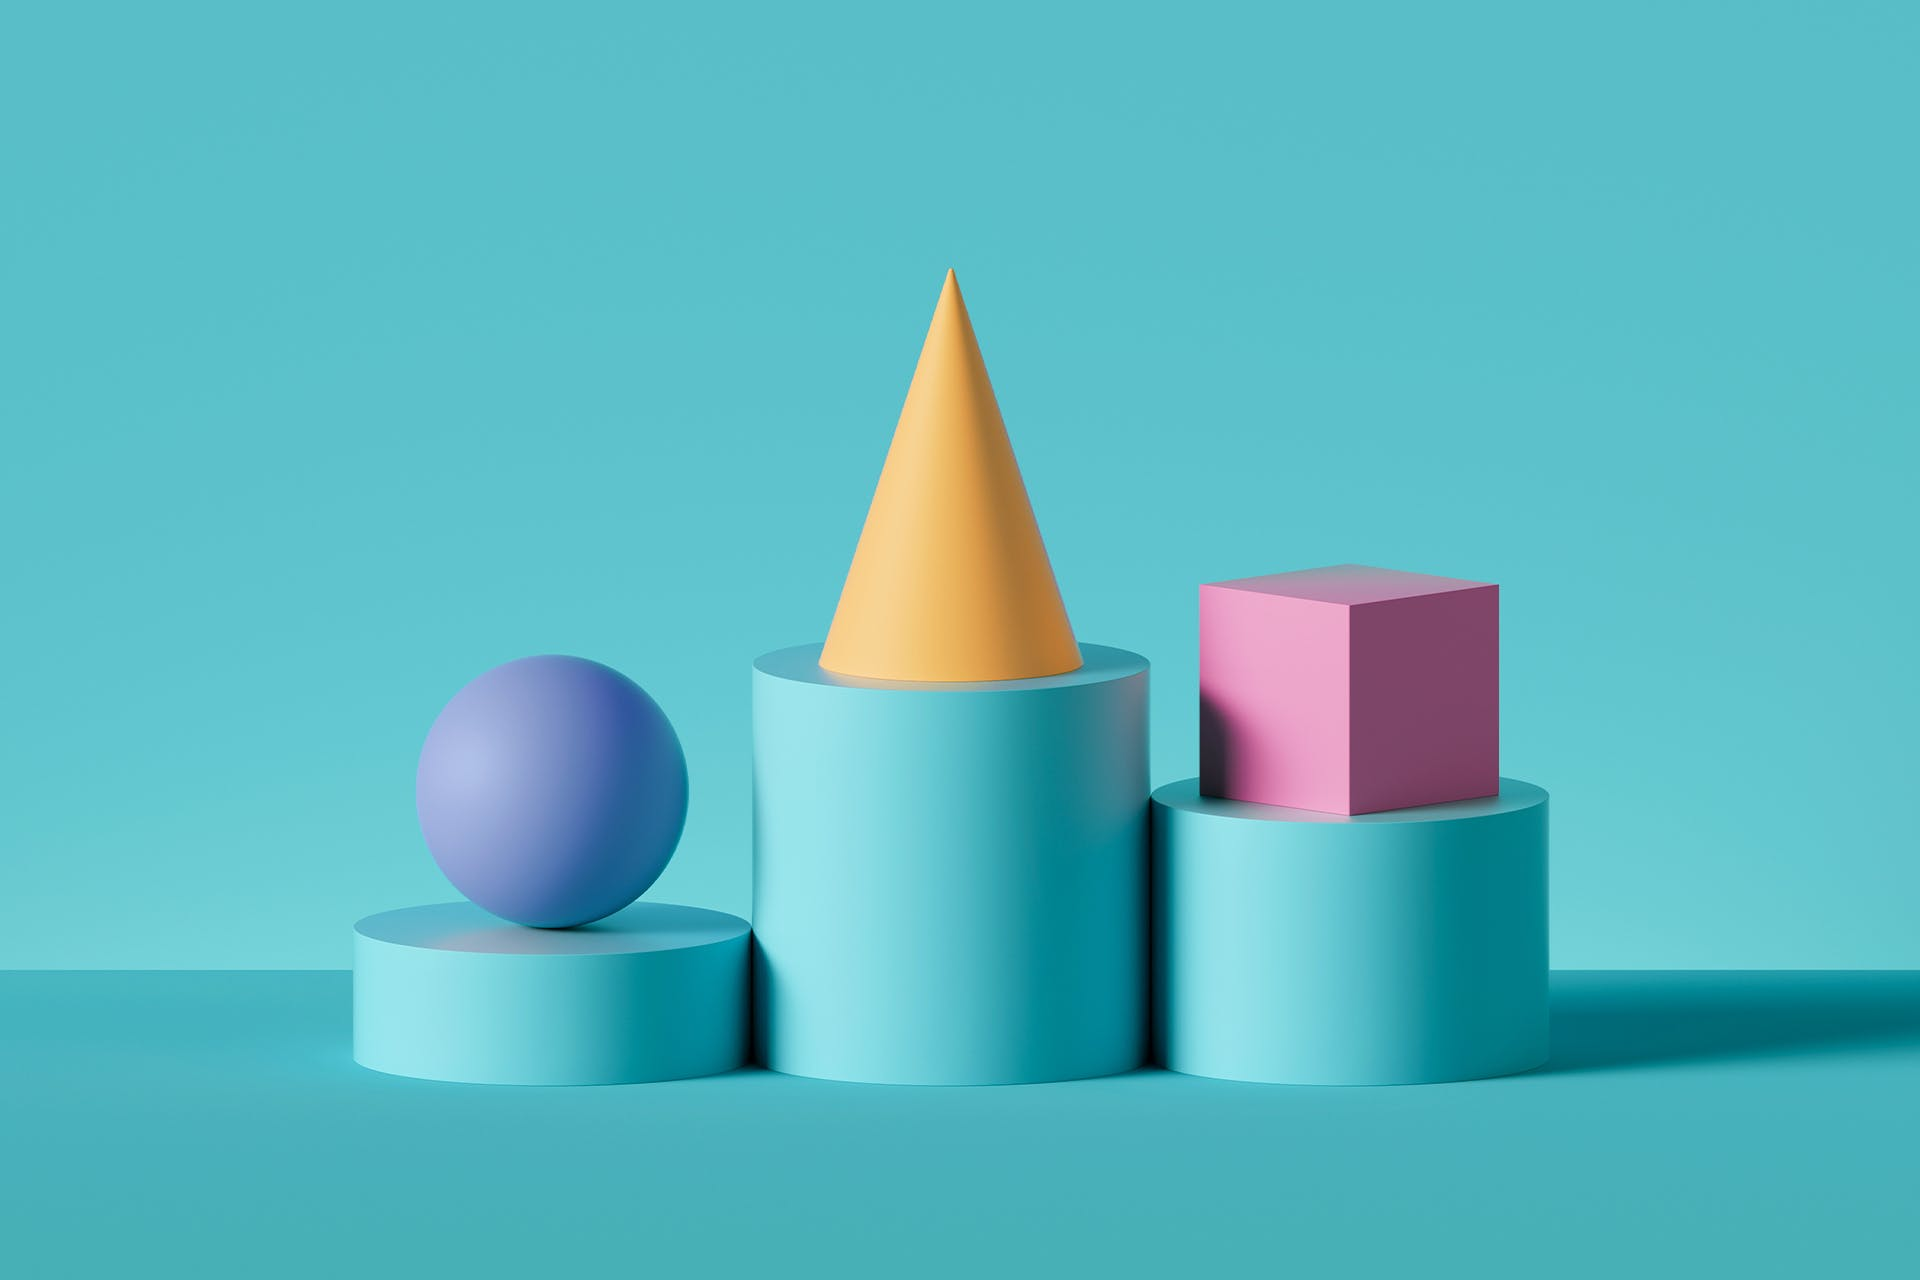 A podium with three different shapes set atop: a sphere, a cone and a square. The different shapes represent the different types of customers explained in this blog.